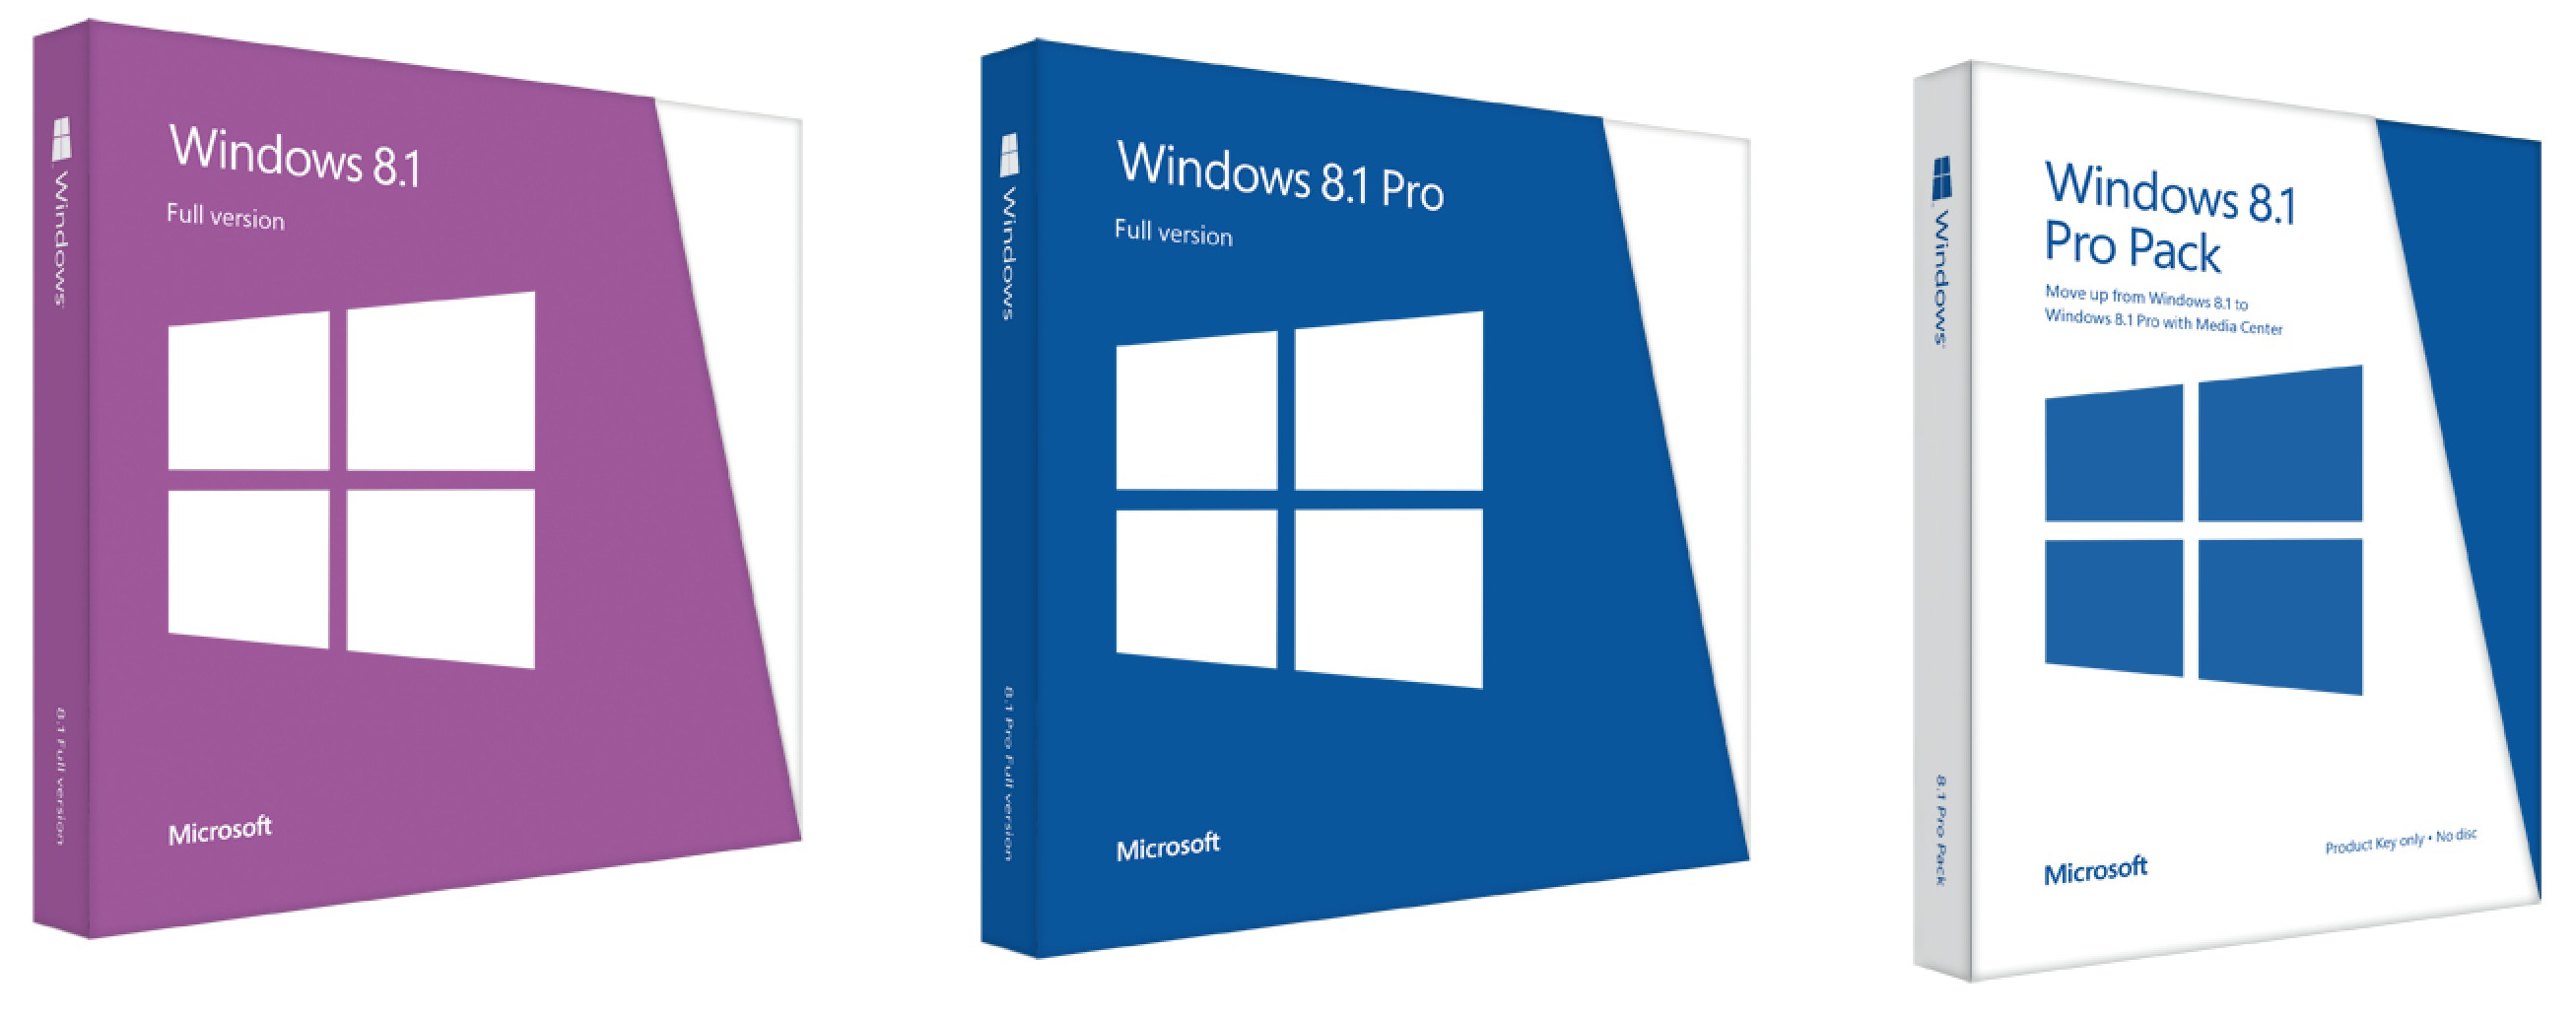 how much is windows 8.1 upgrade